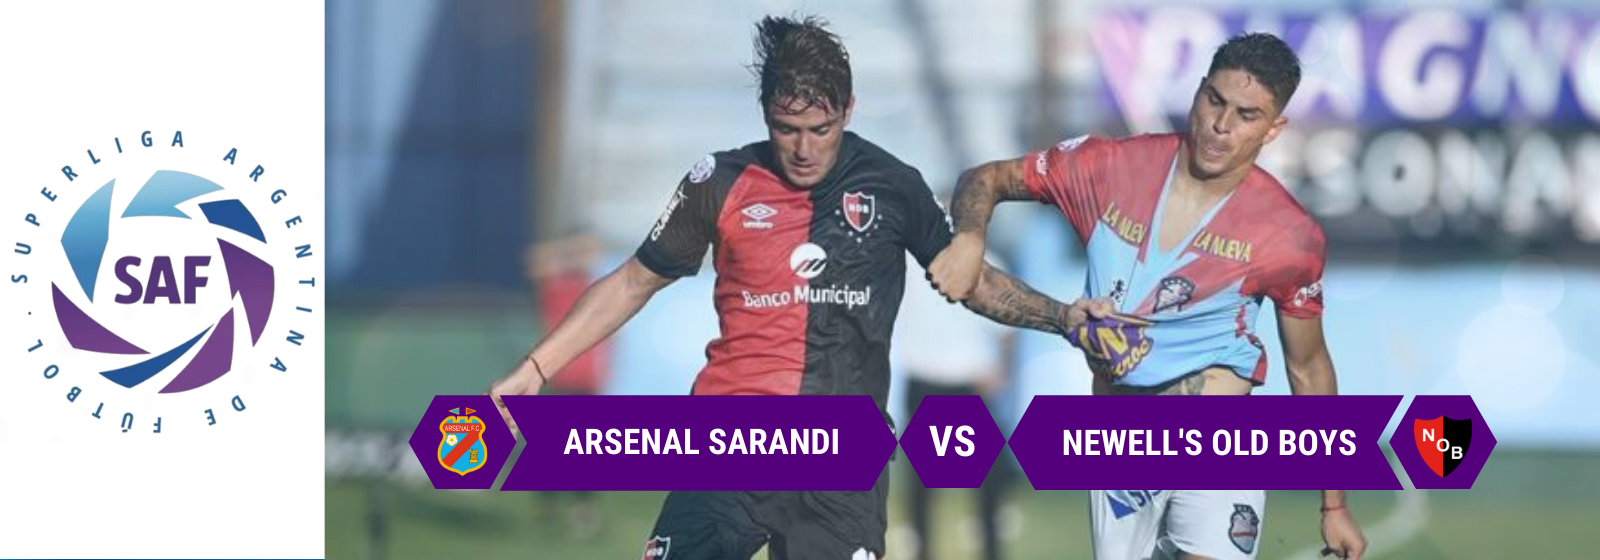 Asianconnect: Arsenal vs Newell's Odds for January 25, 2020